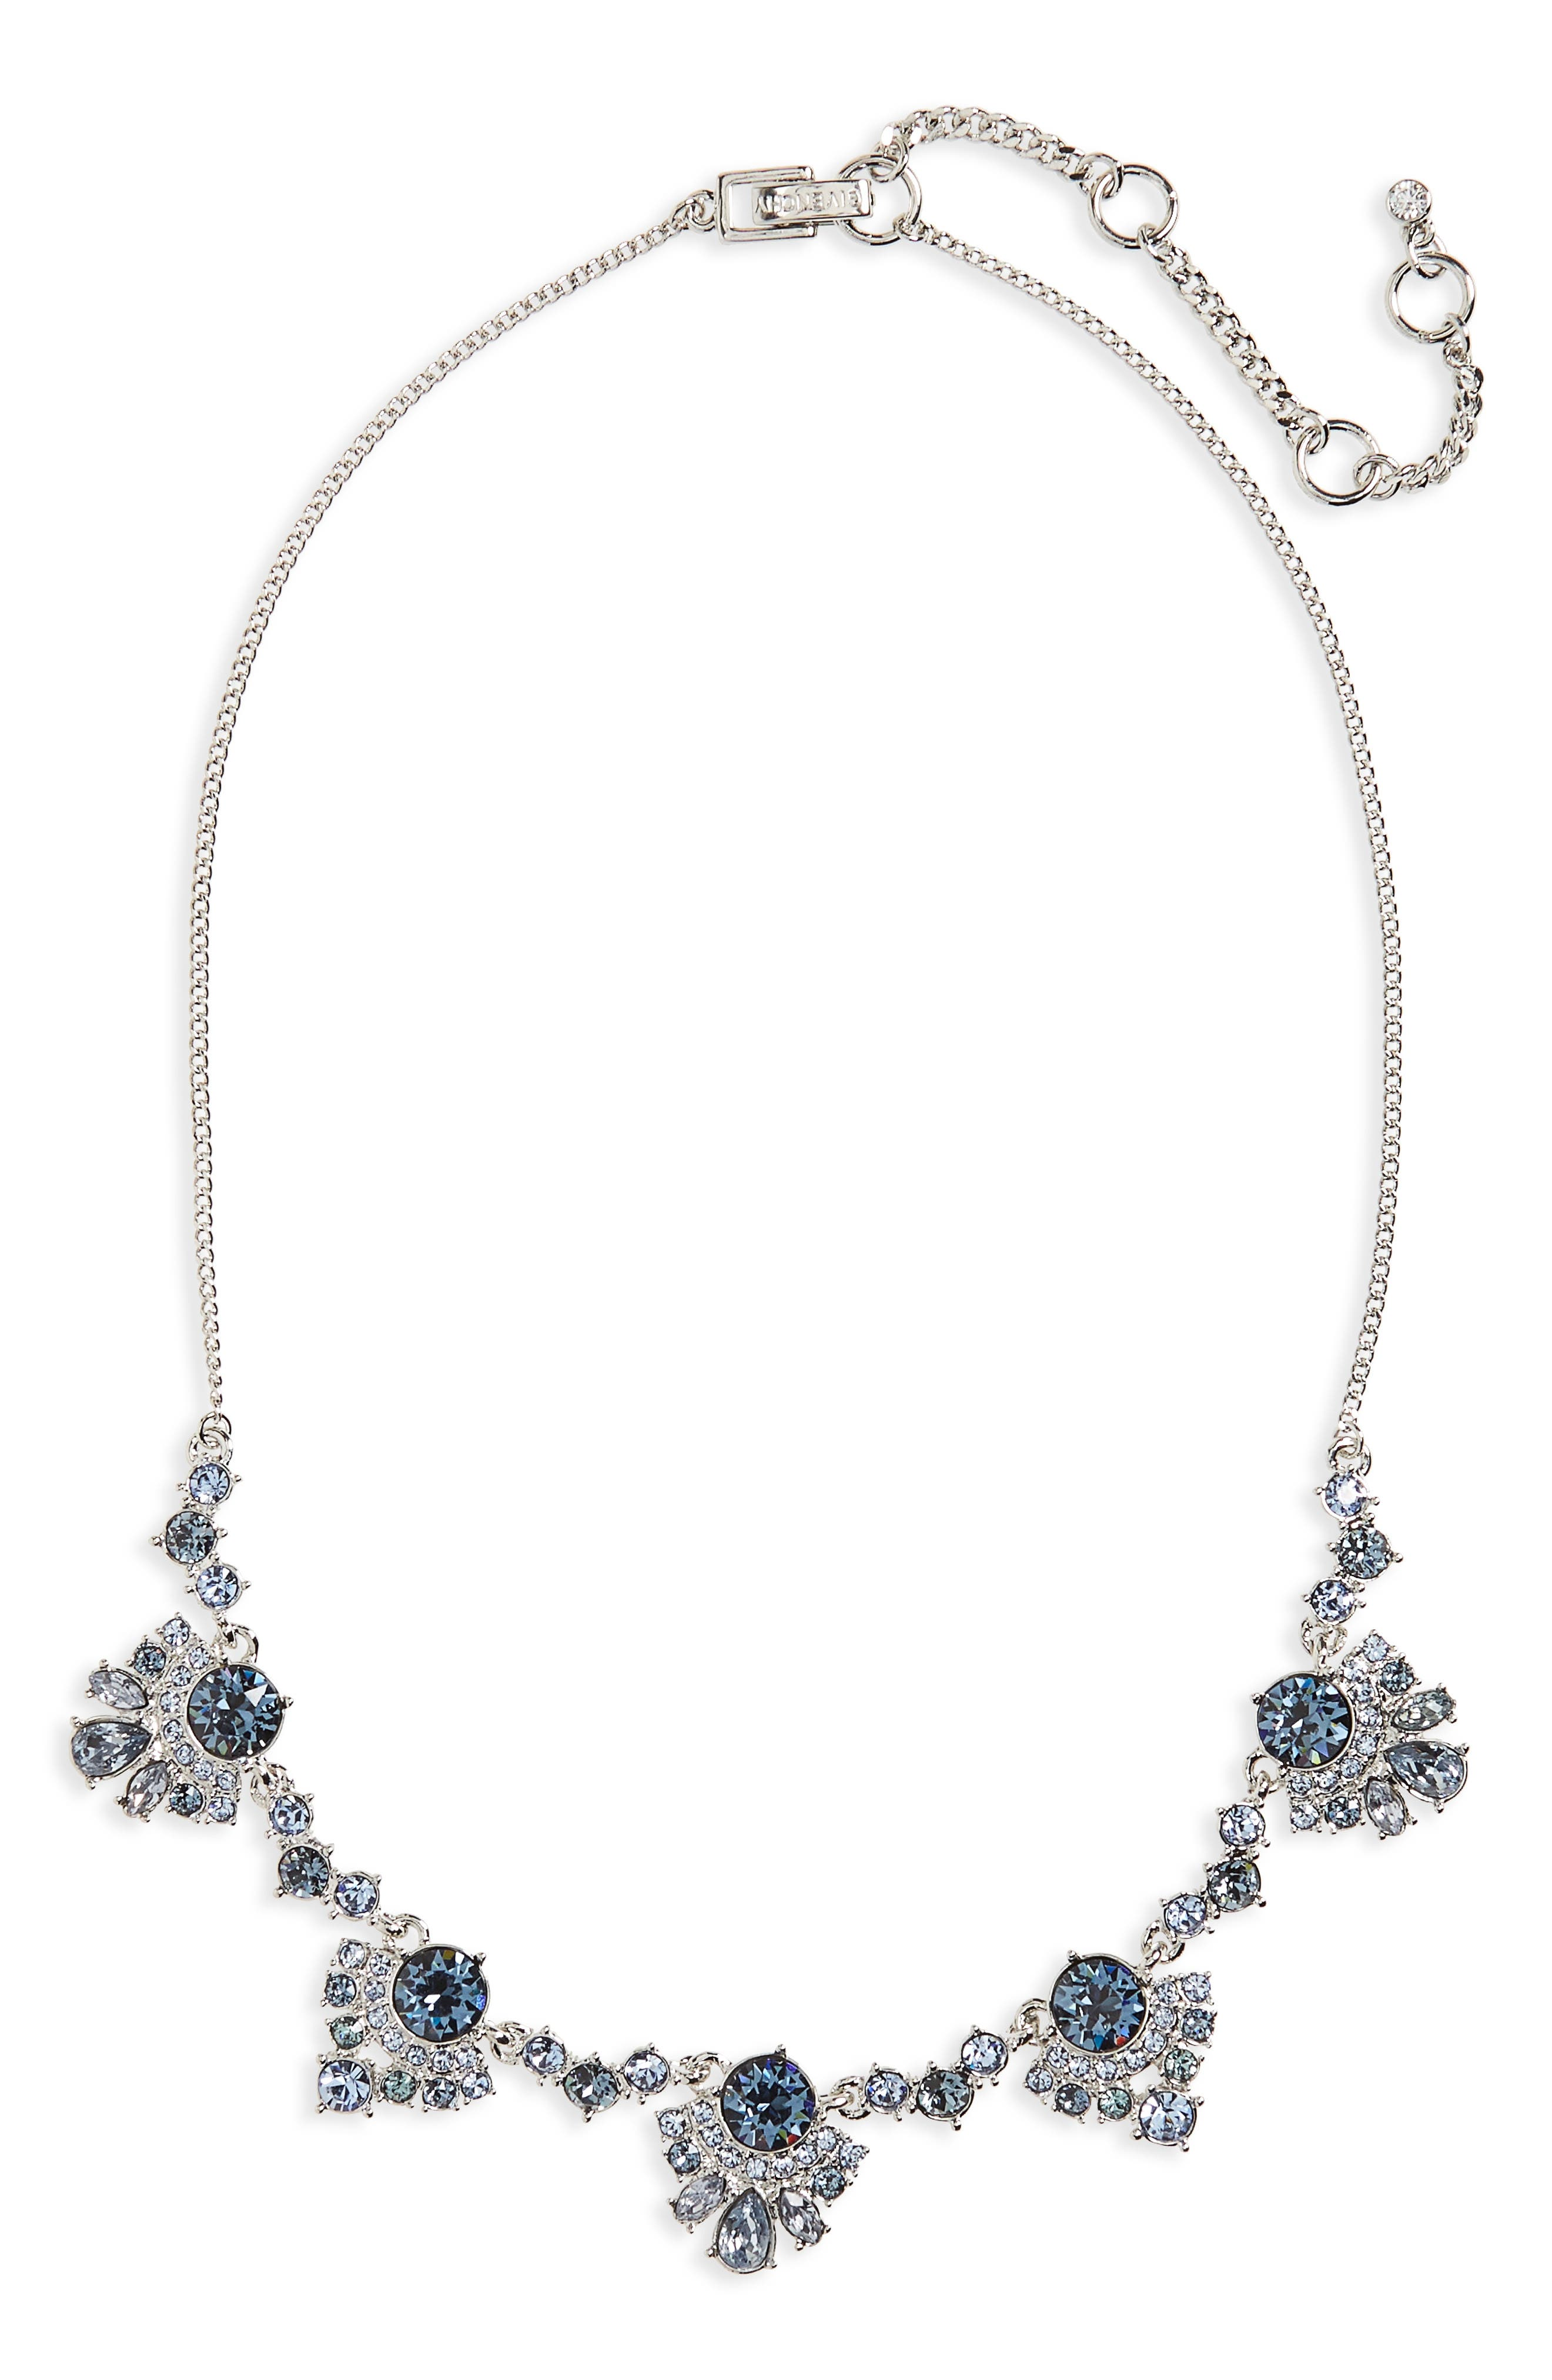 Alternate Image 1 Selected - Givenchy Verona Frontal Necklace